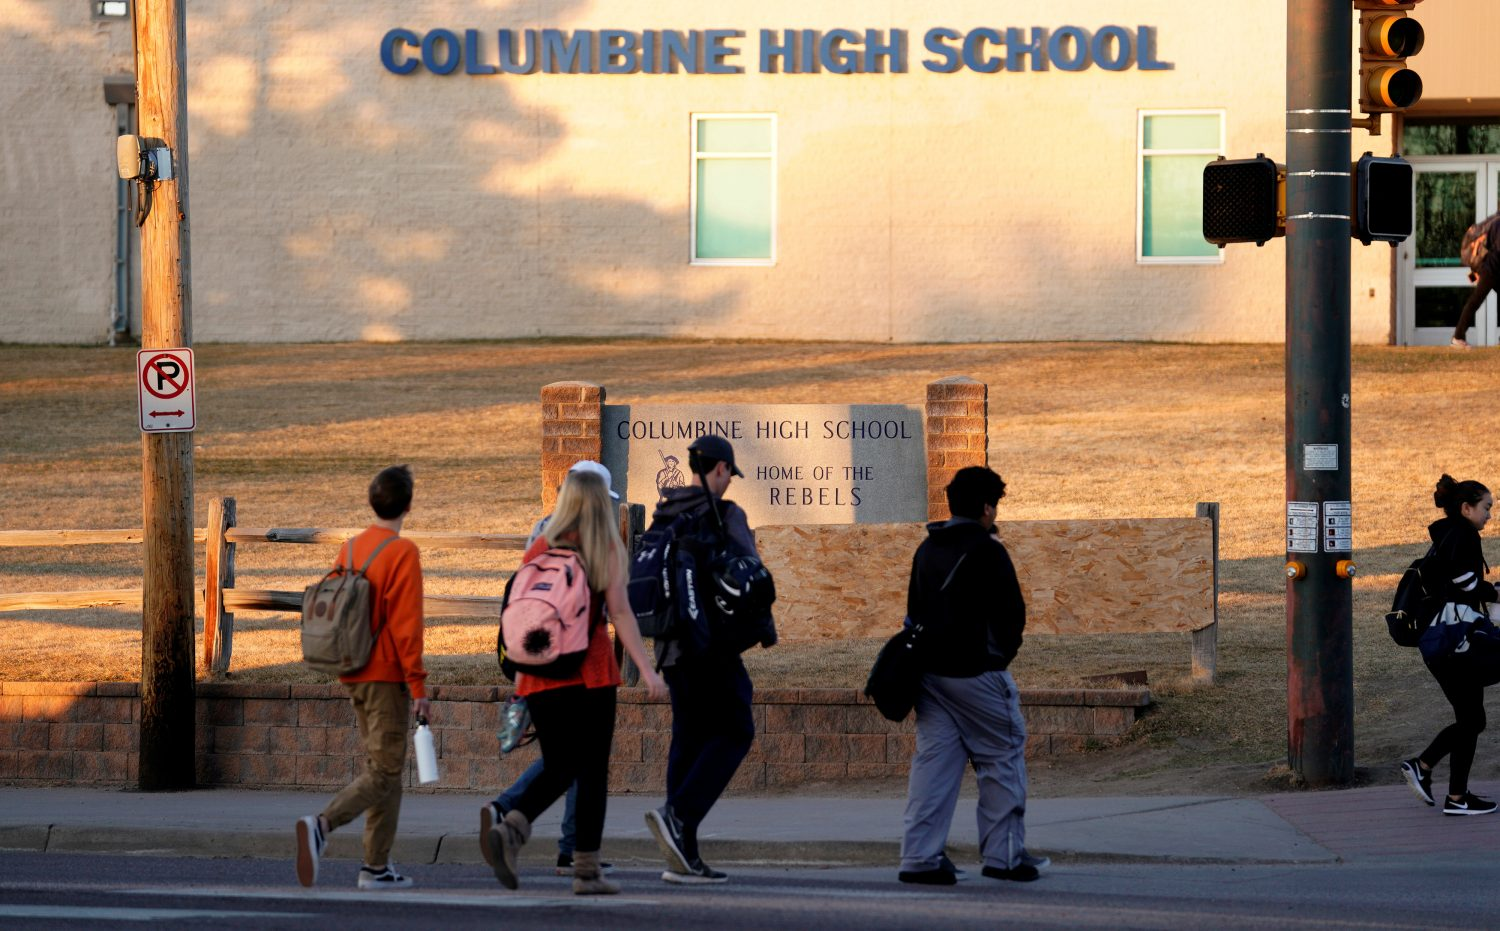 FILE PHOTO: Students arrive for class at Columbine High School before participating in a National School Walkout to honor the 17 students and staff members killed at Marjory Stoneman Douglas High School in Parkland, Florida, in Littleton, Colorado, U.S., March 14, 2018. REUTERS/Rick Wilking/File Photo